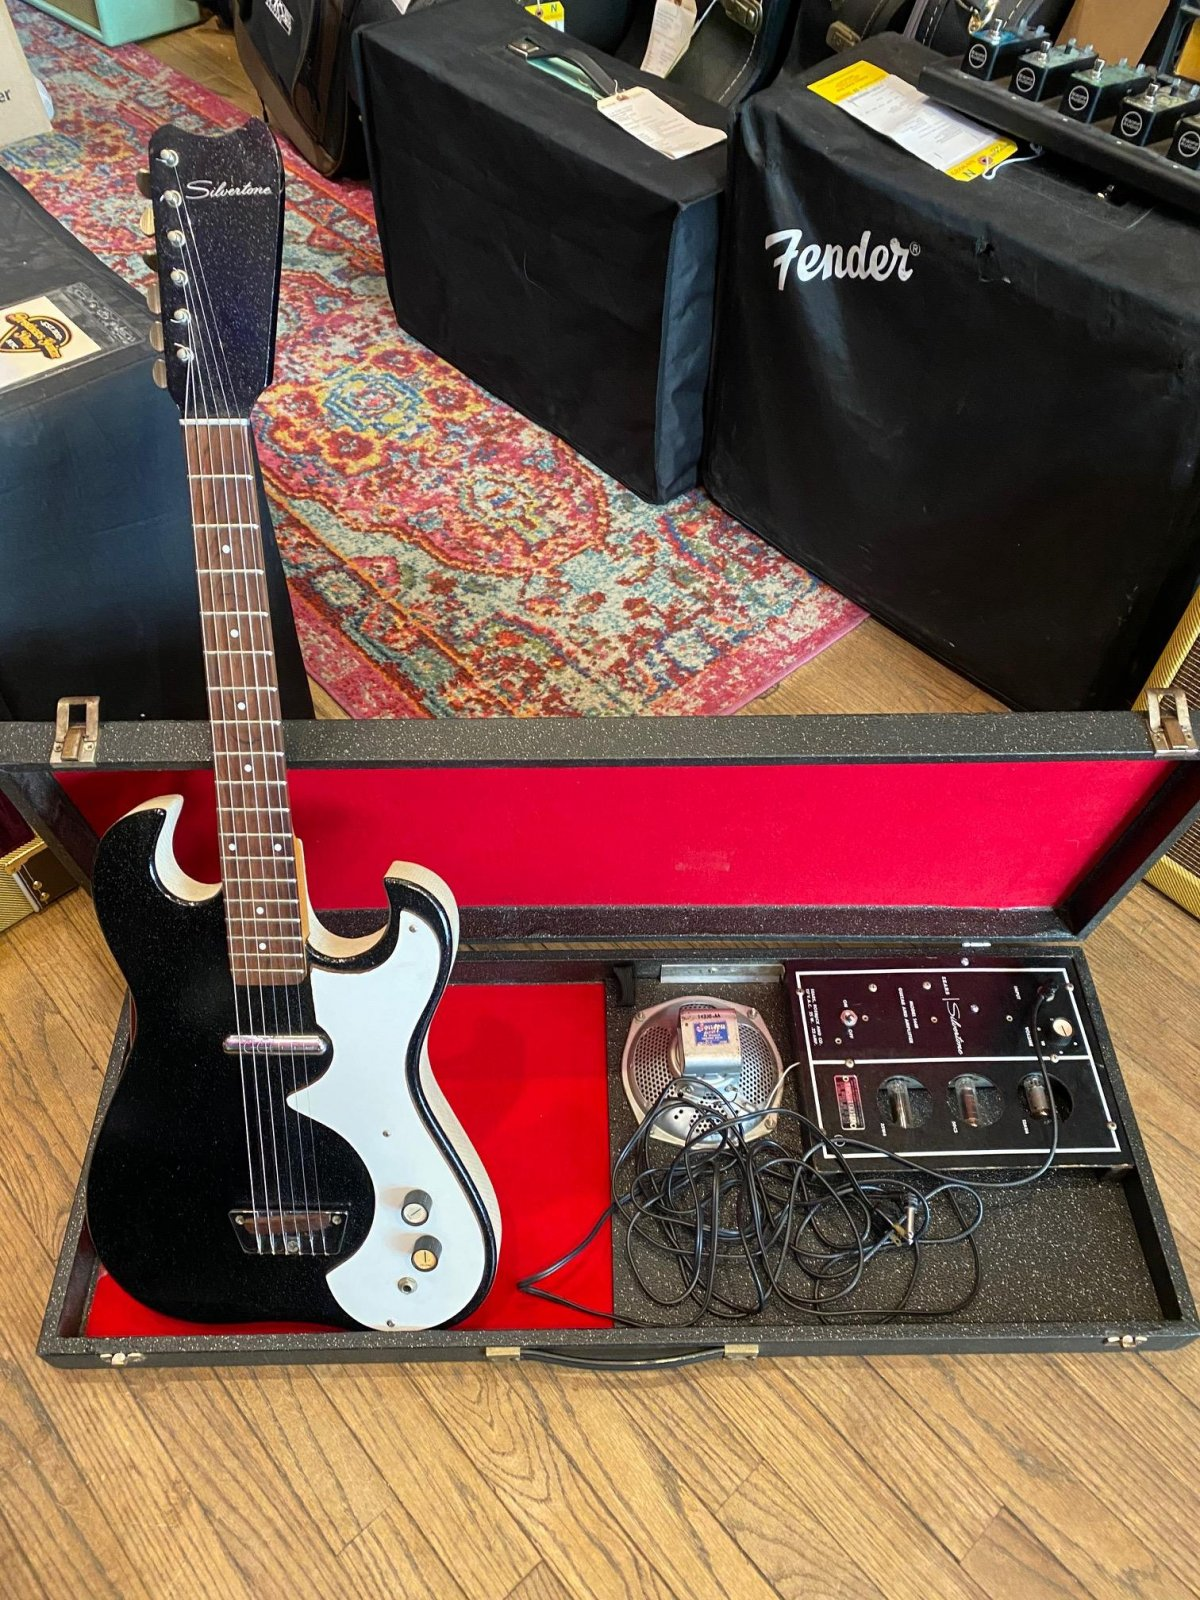 1960's Silvertone Electric Guitar with Amp In Case